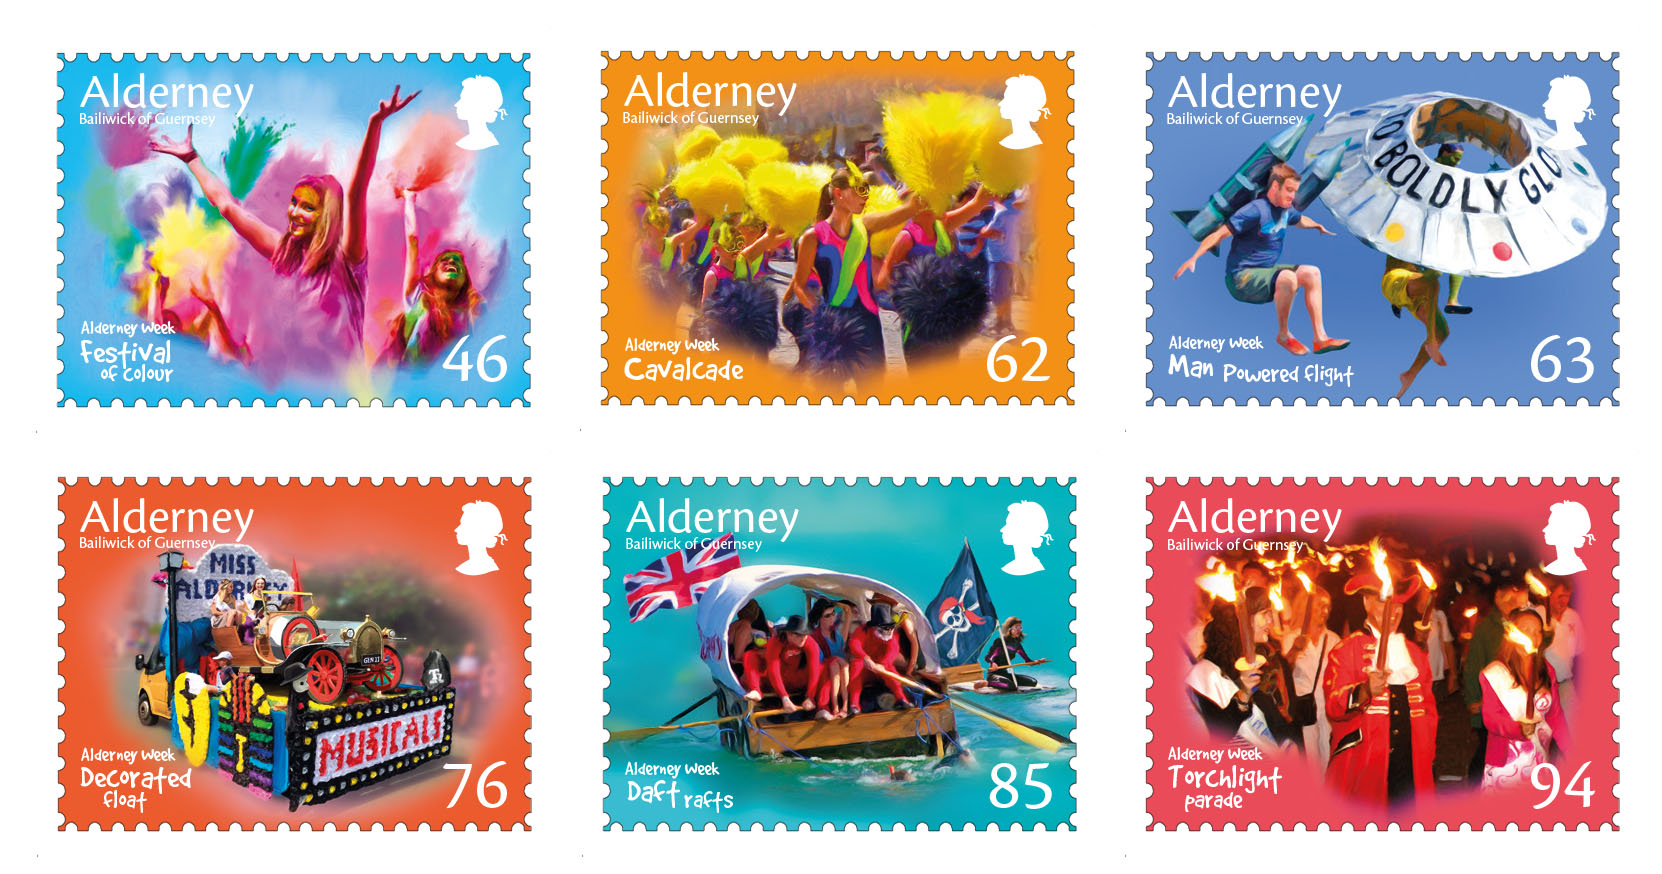 Stamps celebrate 70th Anniversary of Alderney Week